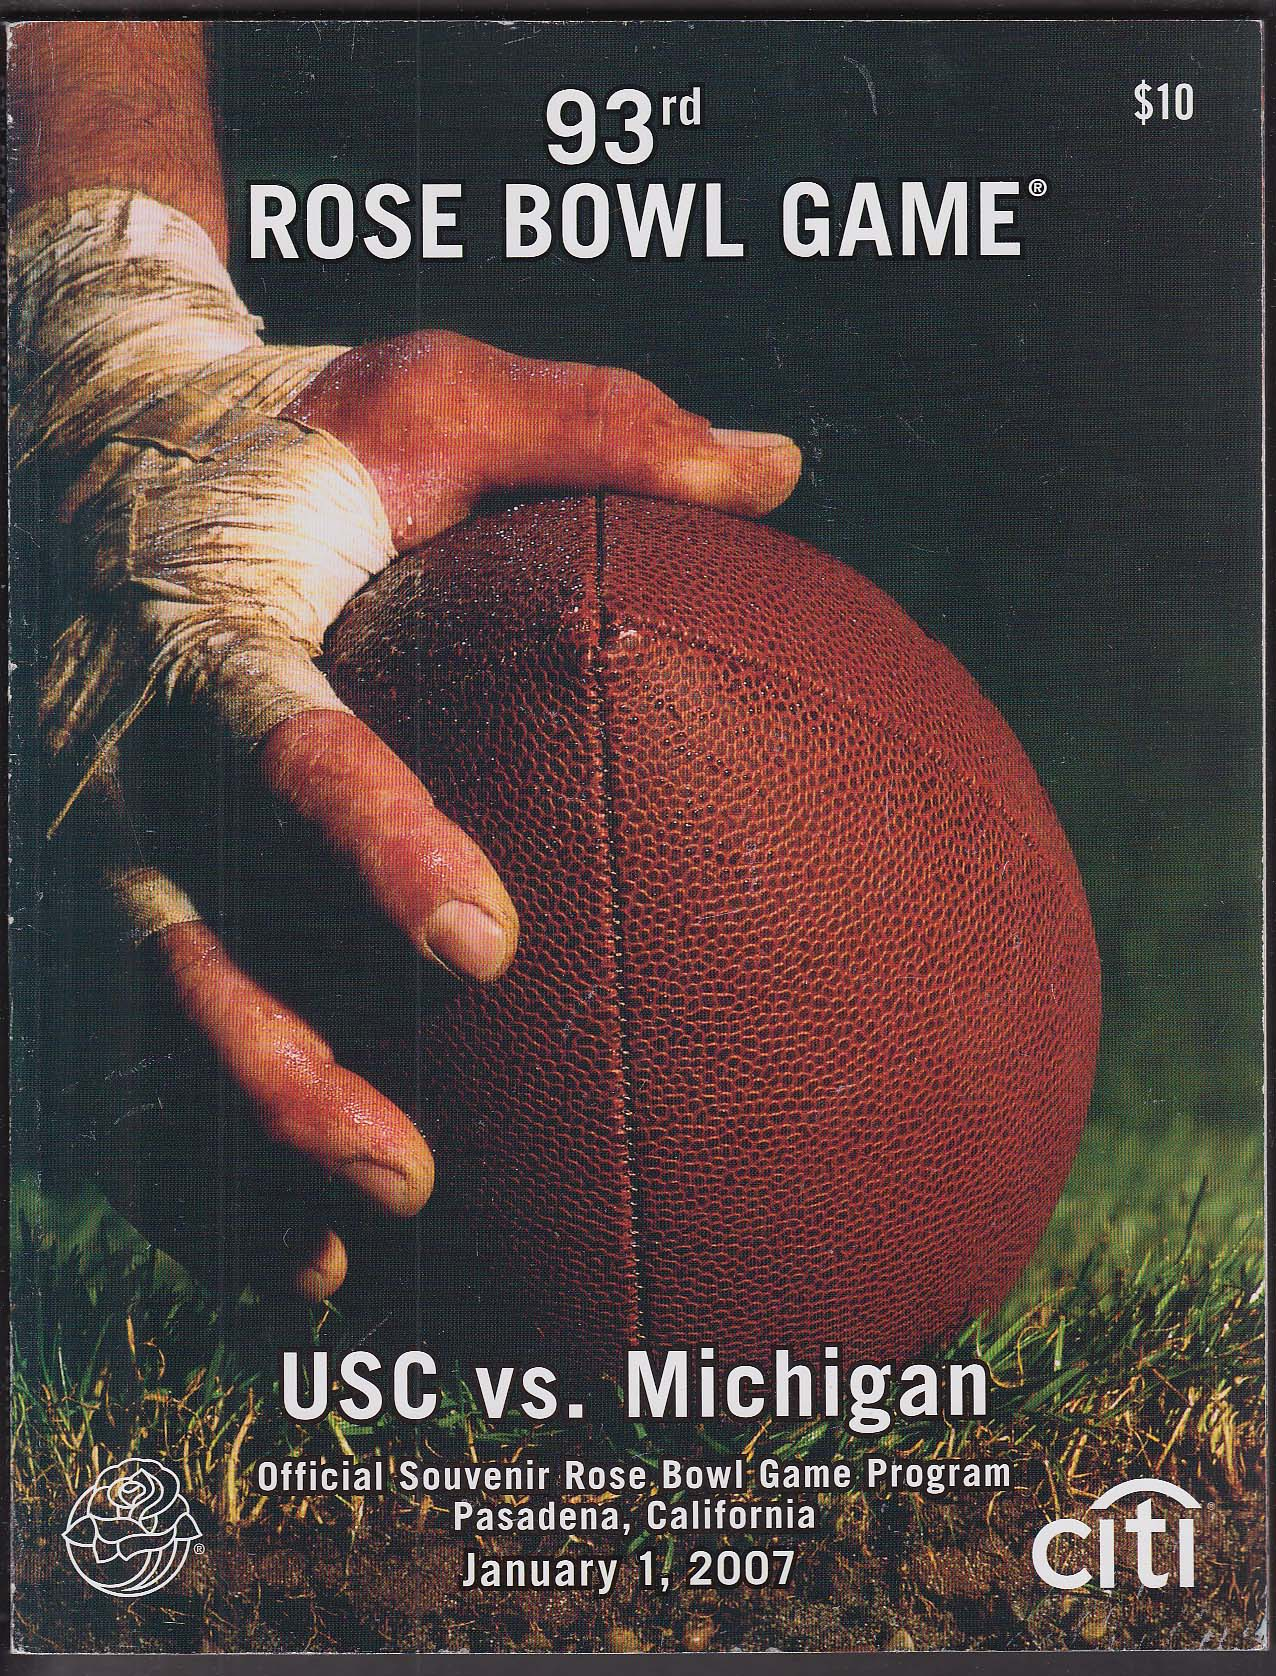 93rd Rose Bowl Game USC vs Michigan Official Souvenir Program